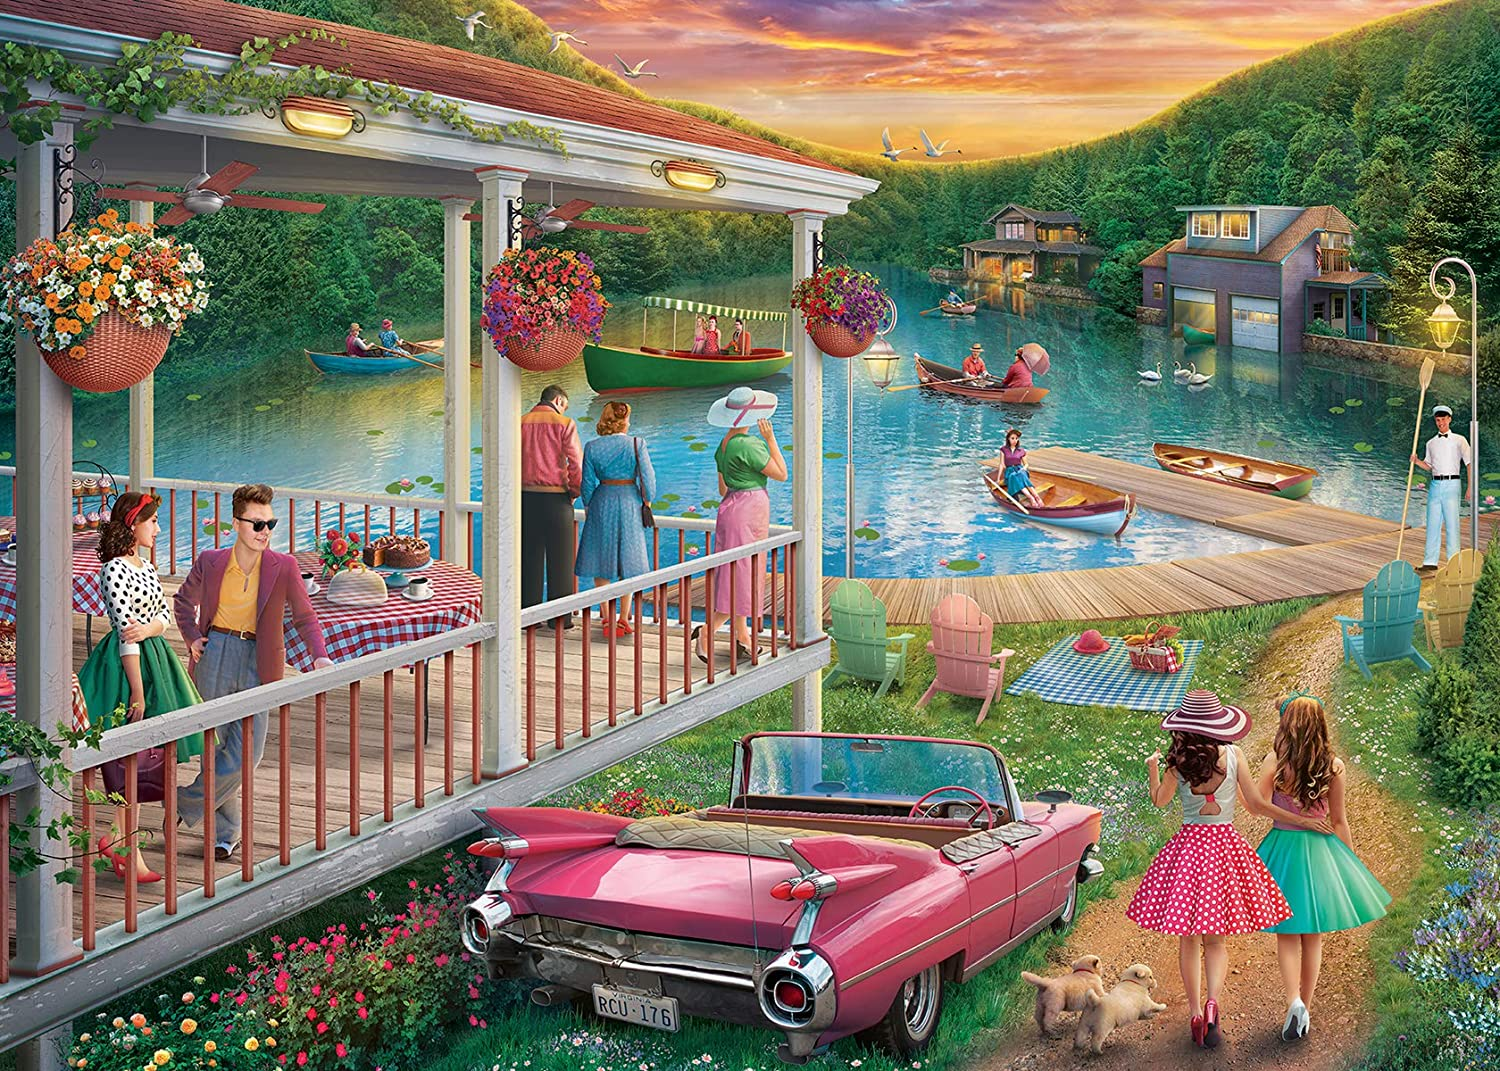 Ravensburger 16438 Summer at The Lake 300 Piece Large Pieces Jigsaw Puzzle for Adults - Every Piece is Unique, Softclick Technology Means Pieces Fit Together Perfectly